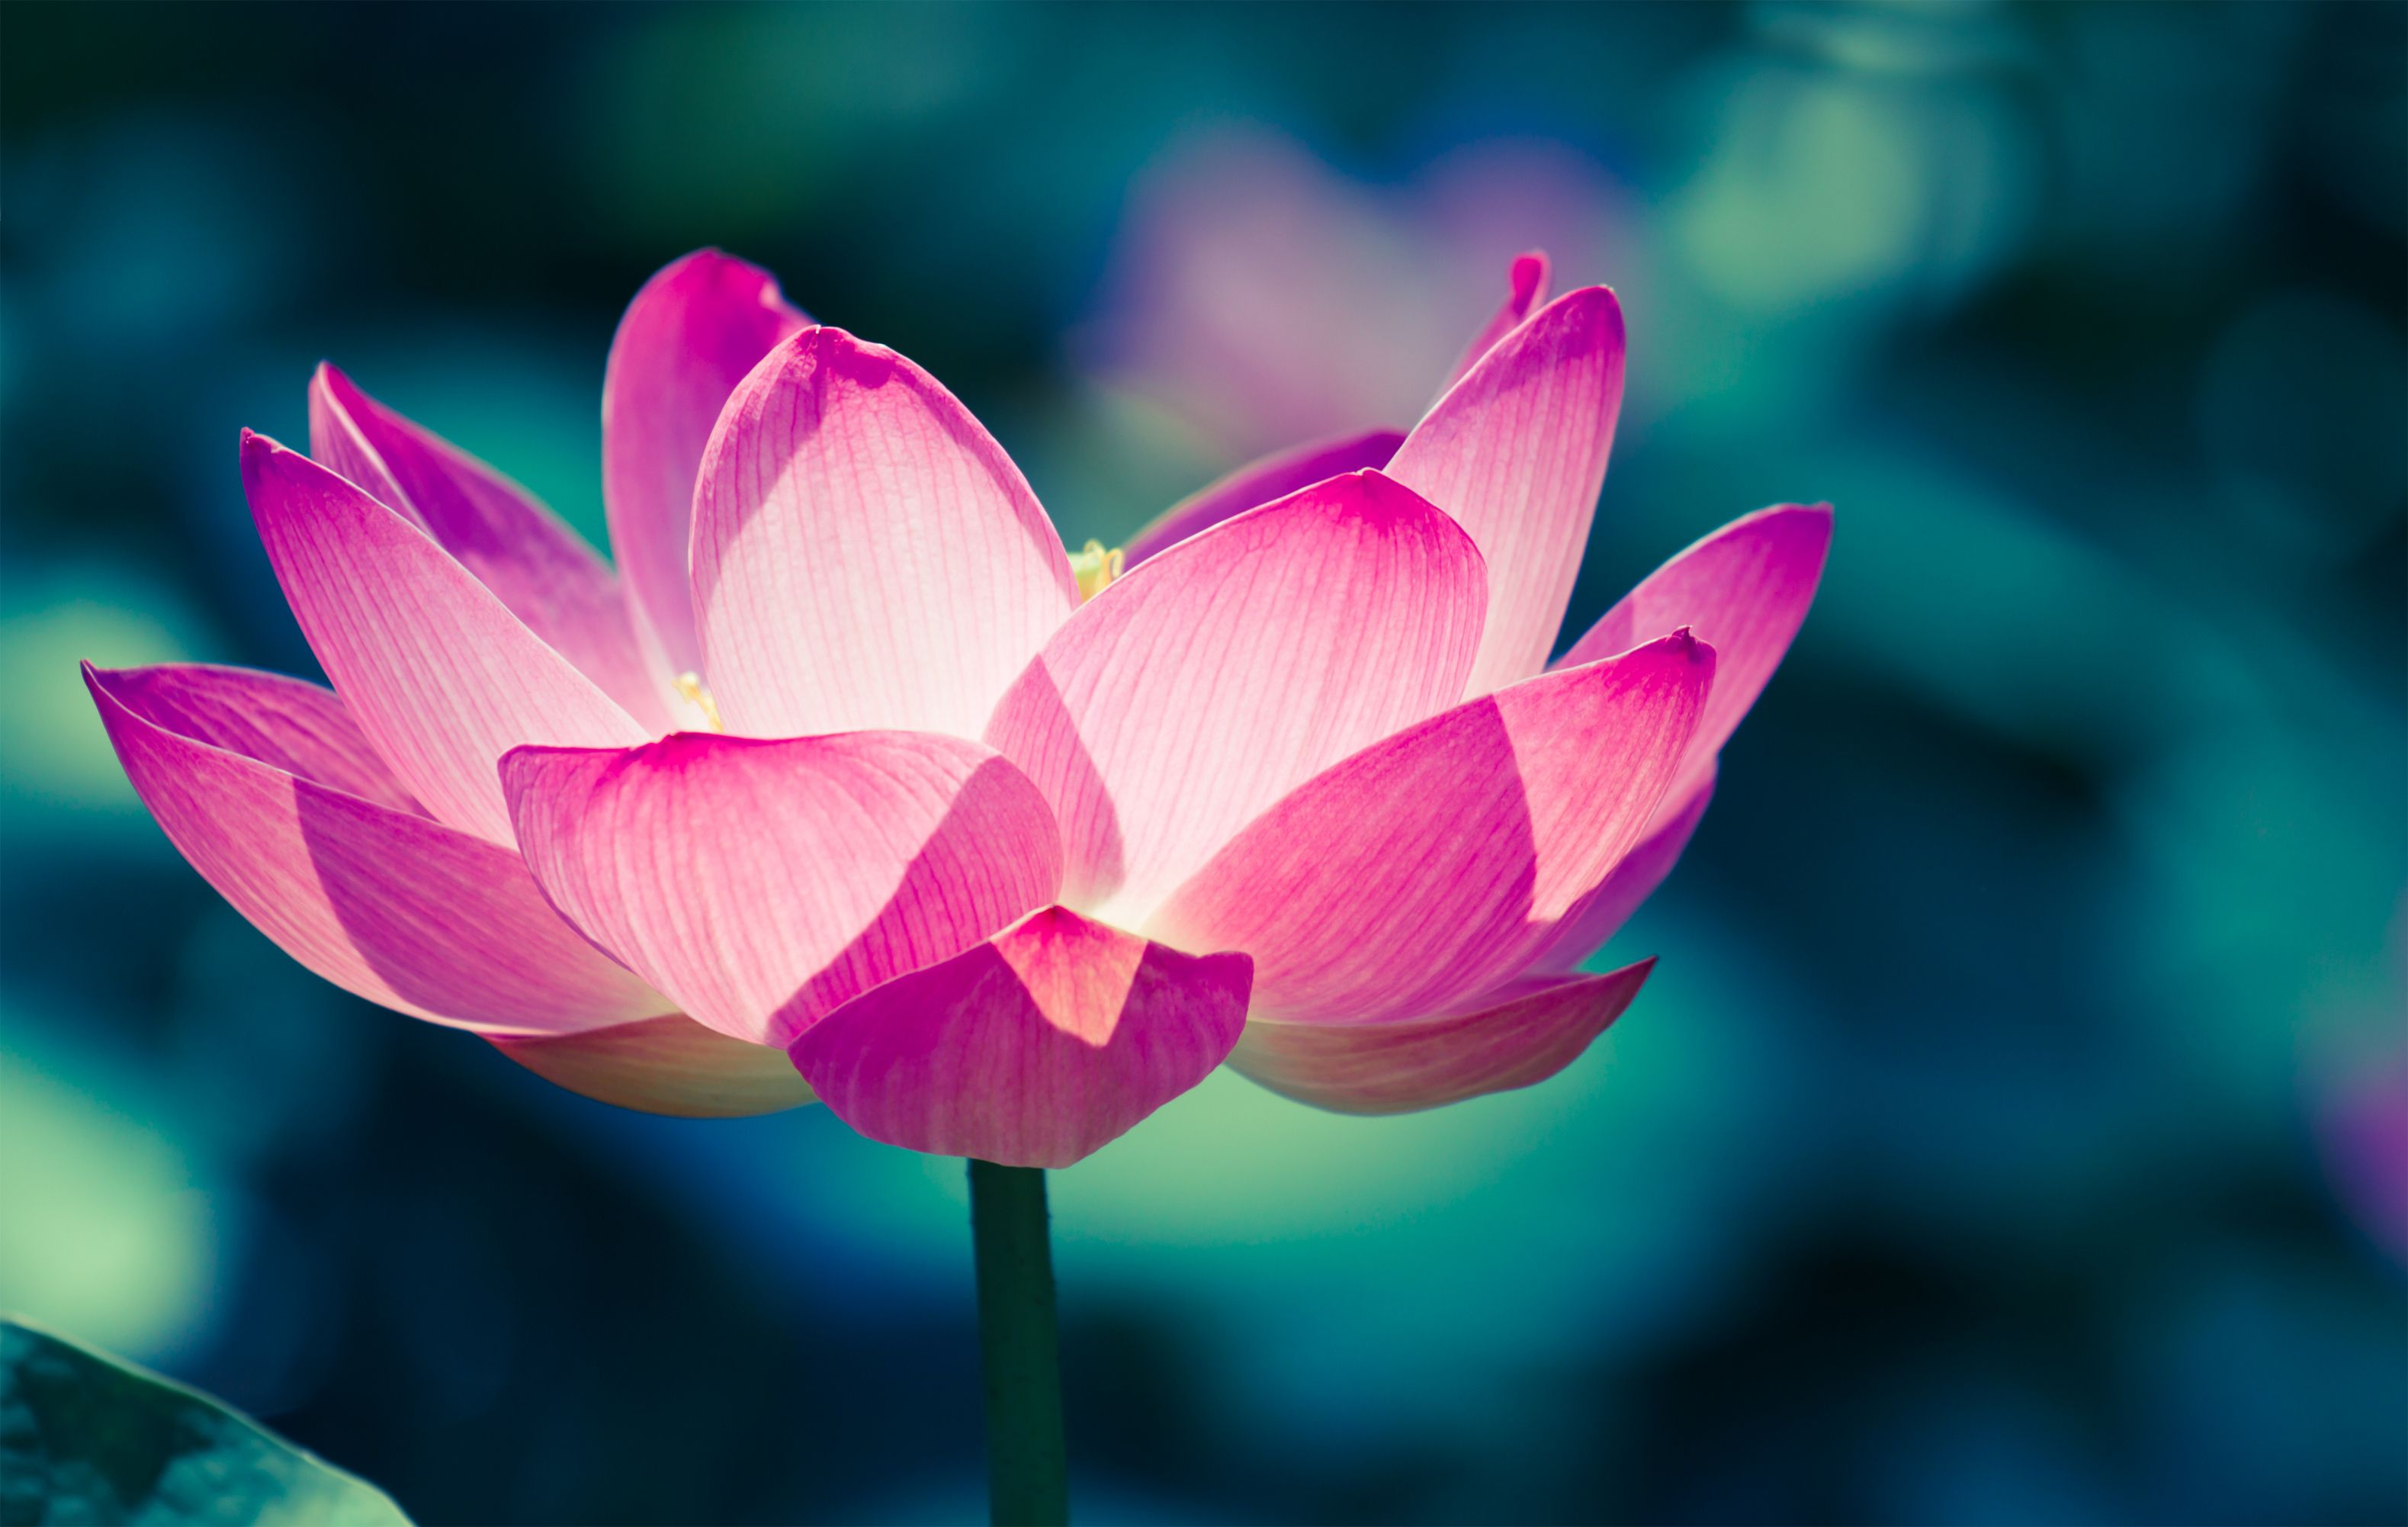 lotus flower meaning  what is the symbolism behind the lotus, Beautiful flower